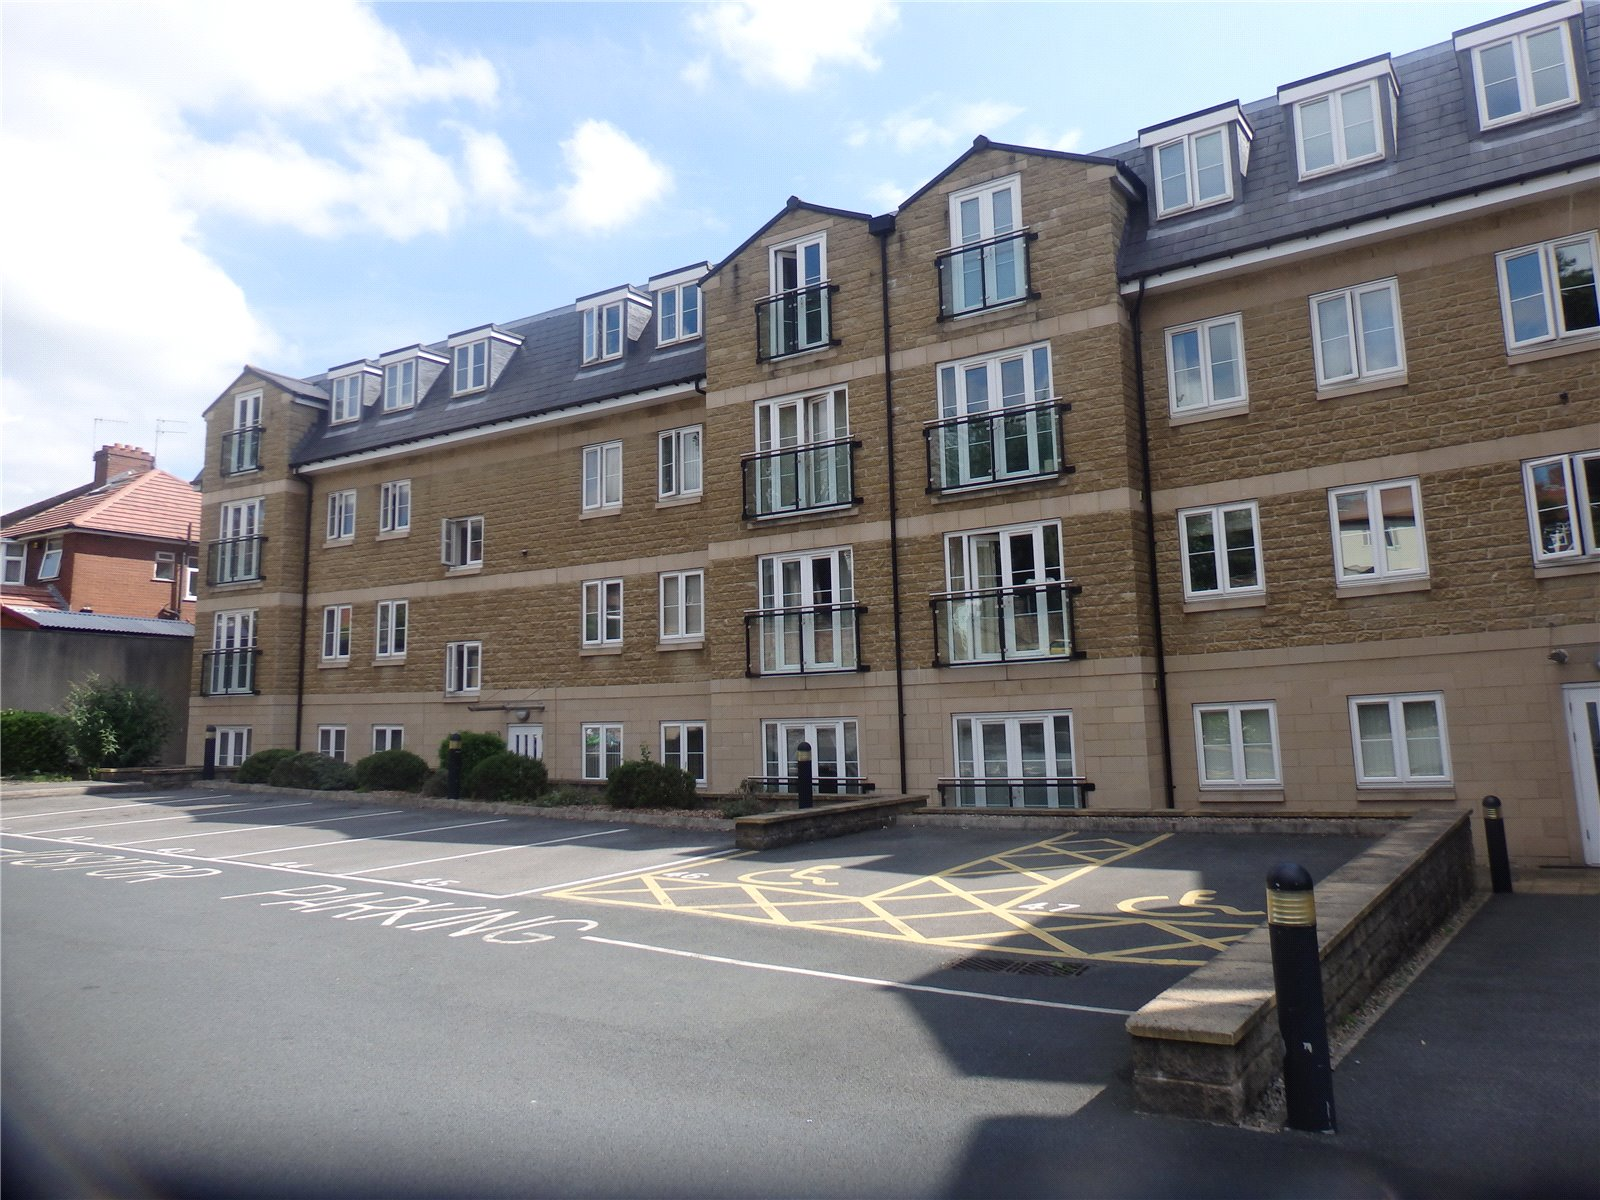 Yorkshire Terrace: Whitegates Halifax 2 Bedroom Flat To Rent In The Hub